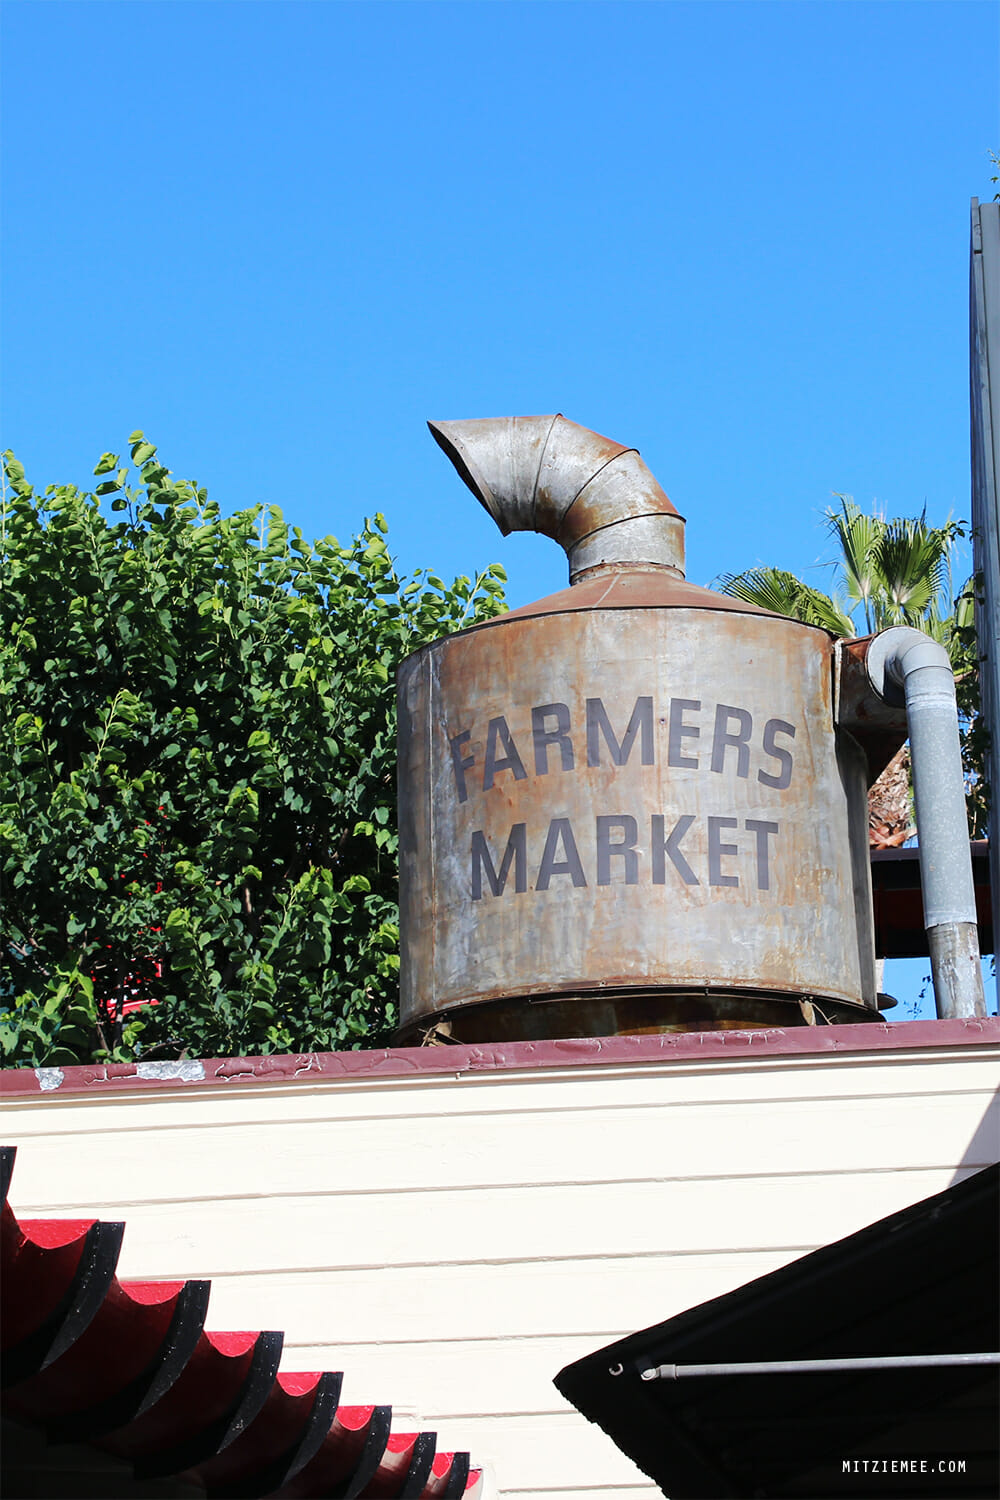 The Grove/Farmers Market, Los Angeles